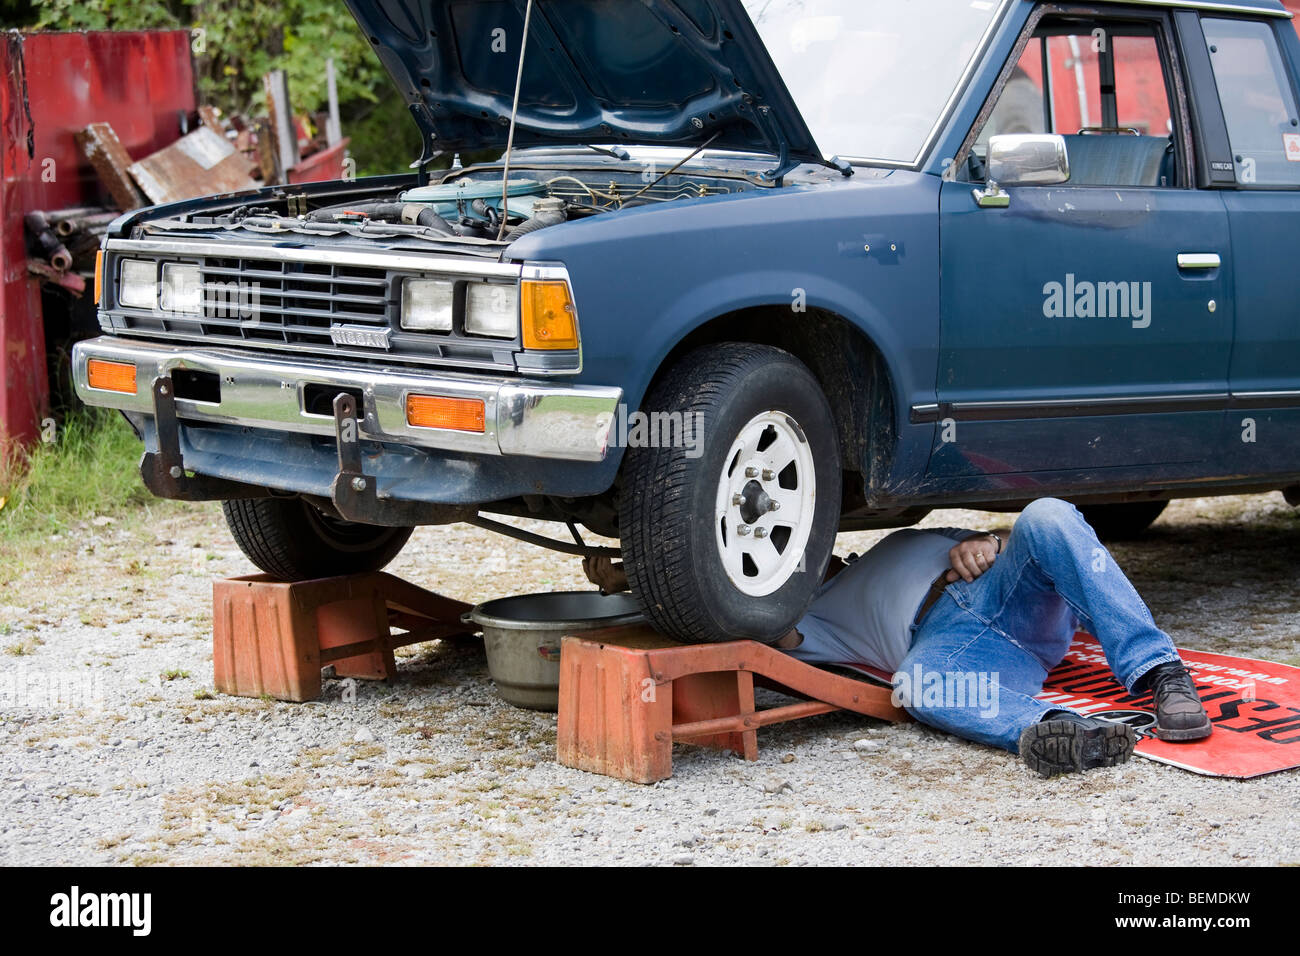 Cheap Old Car Stock Photos & Cheap Old Car Stock Images - Alamy